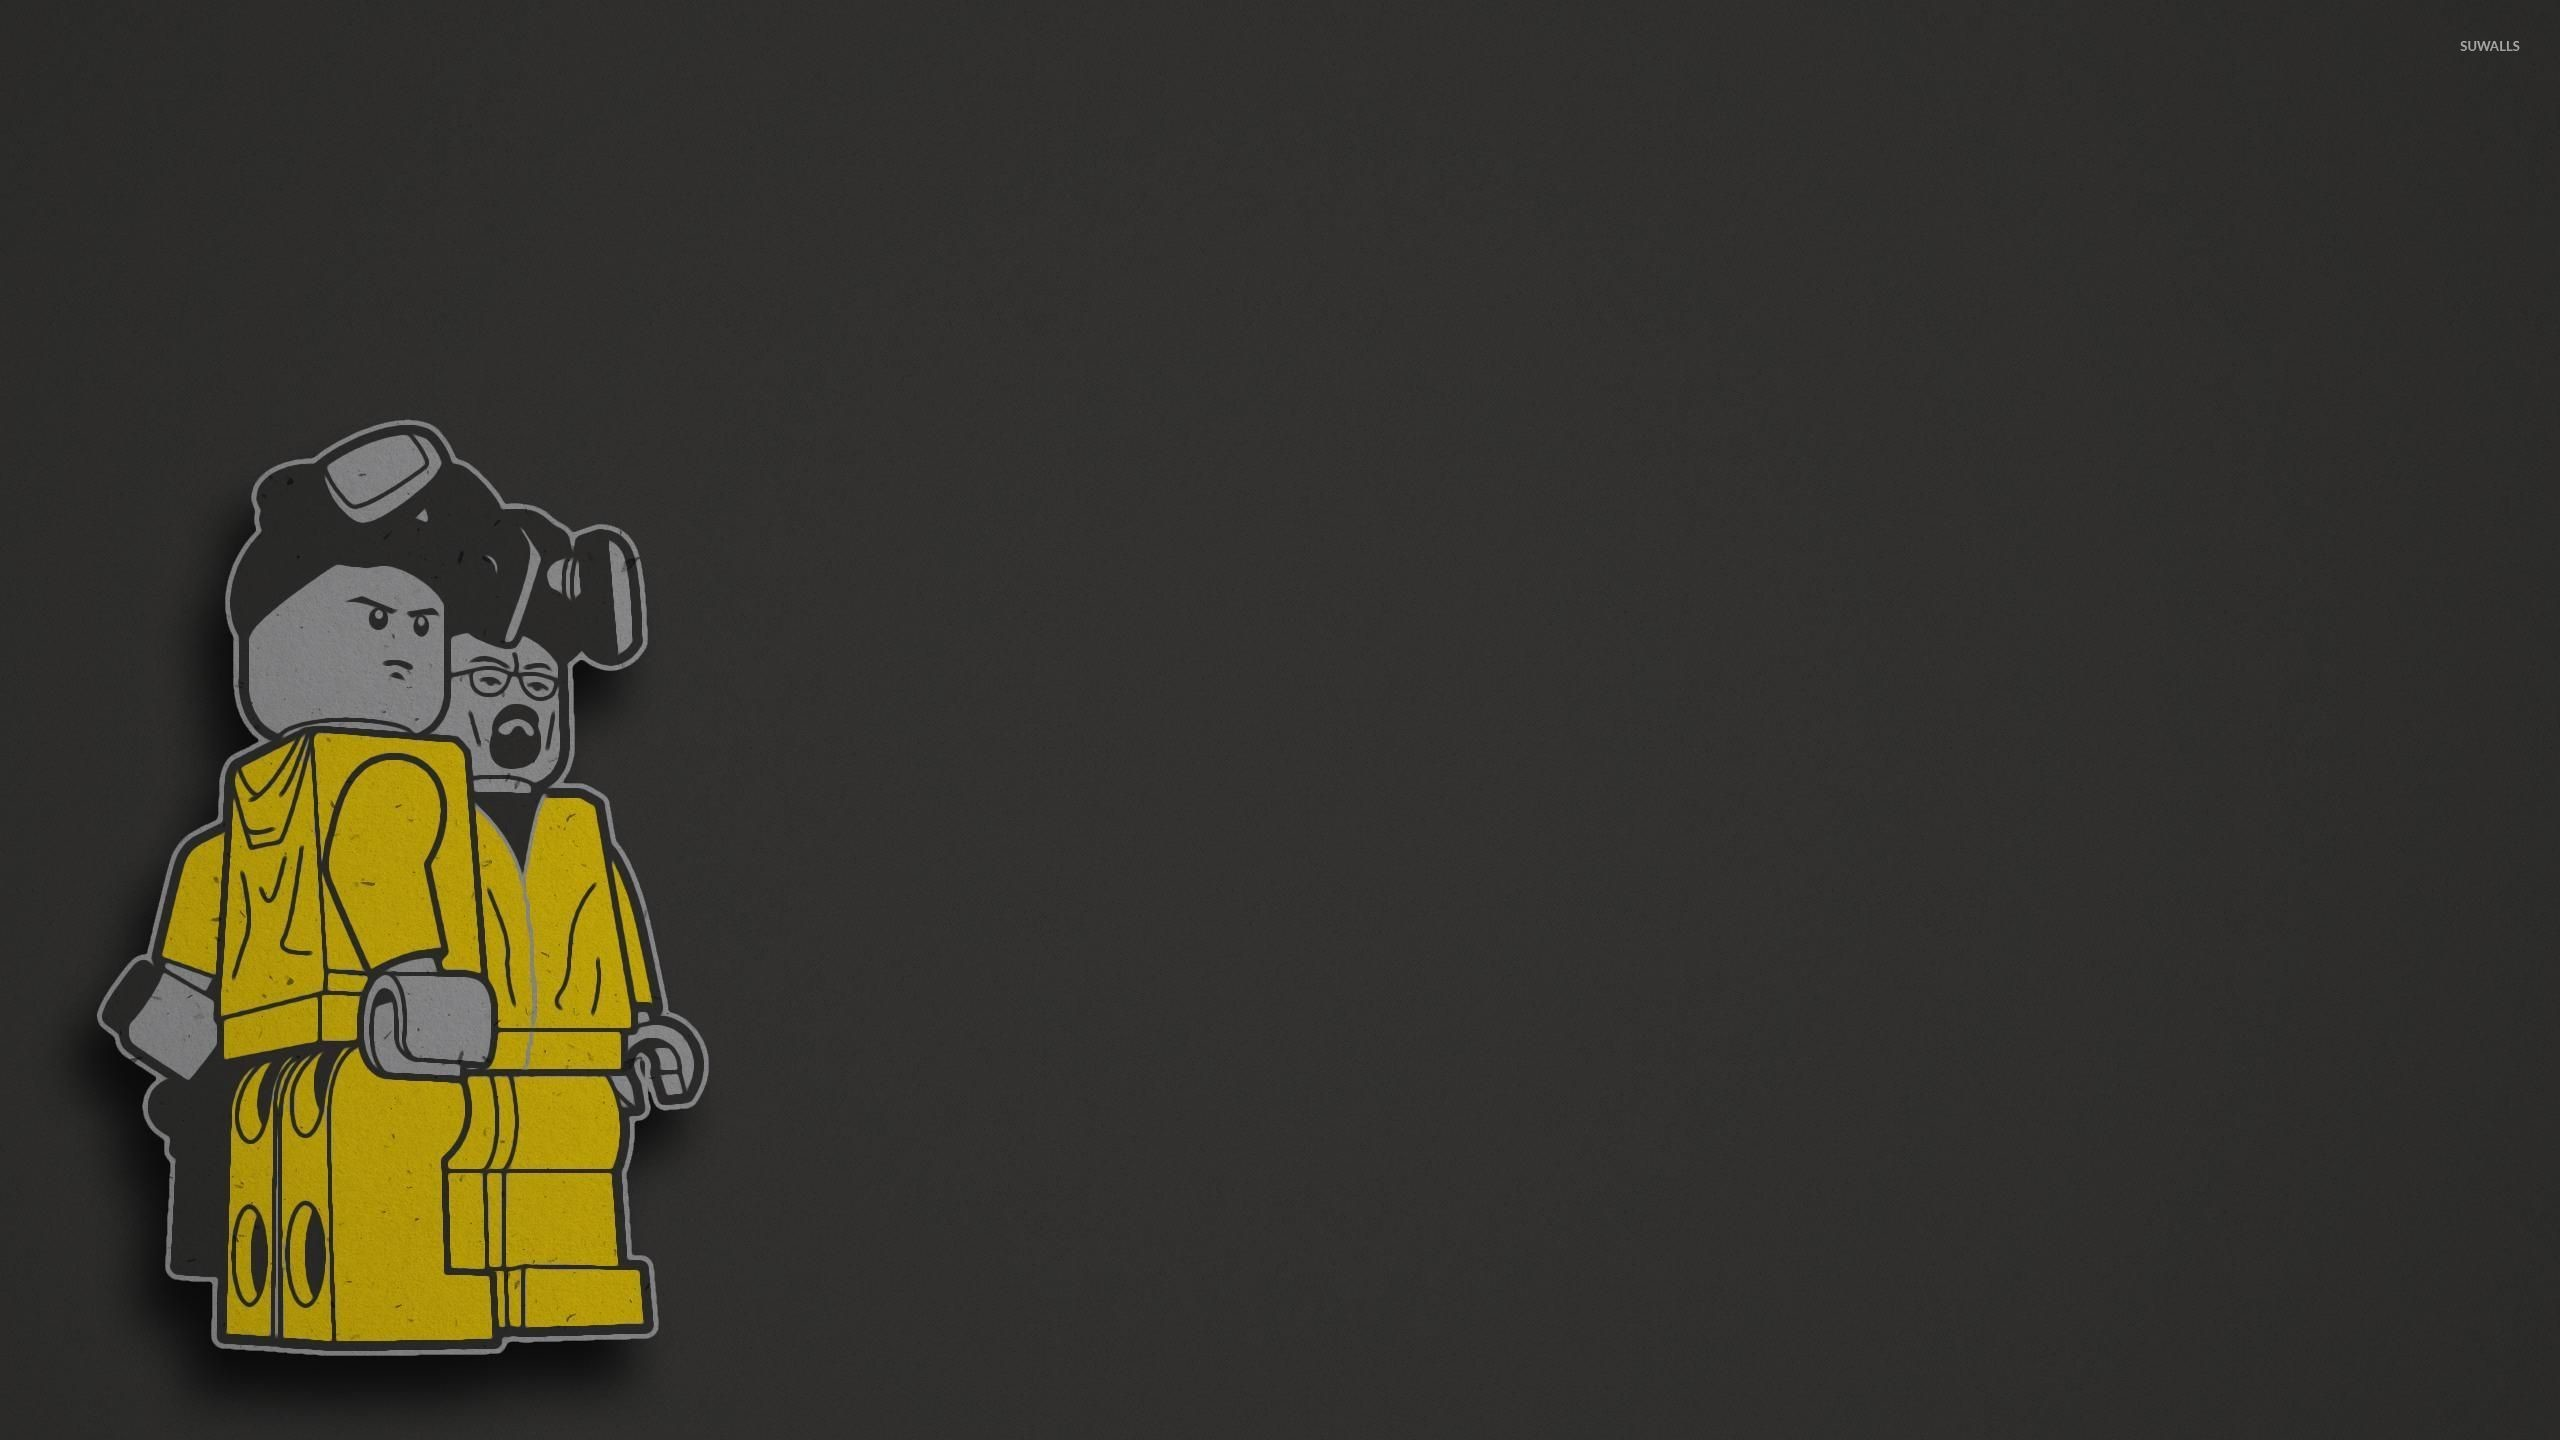 2560x1440 Lego Breaking Bad wallpaper  jpg